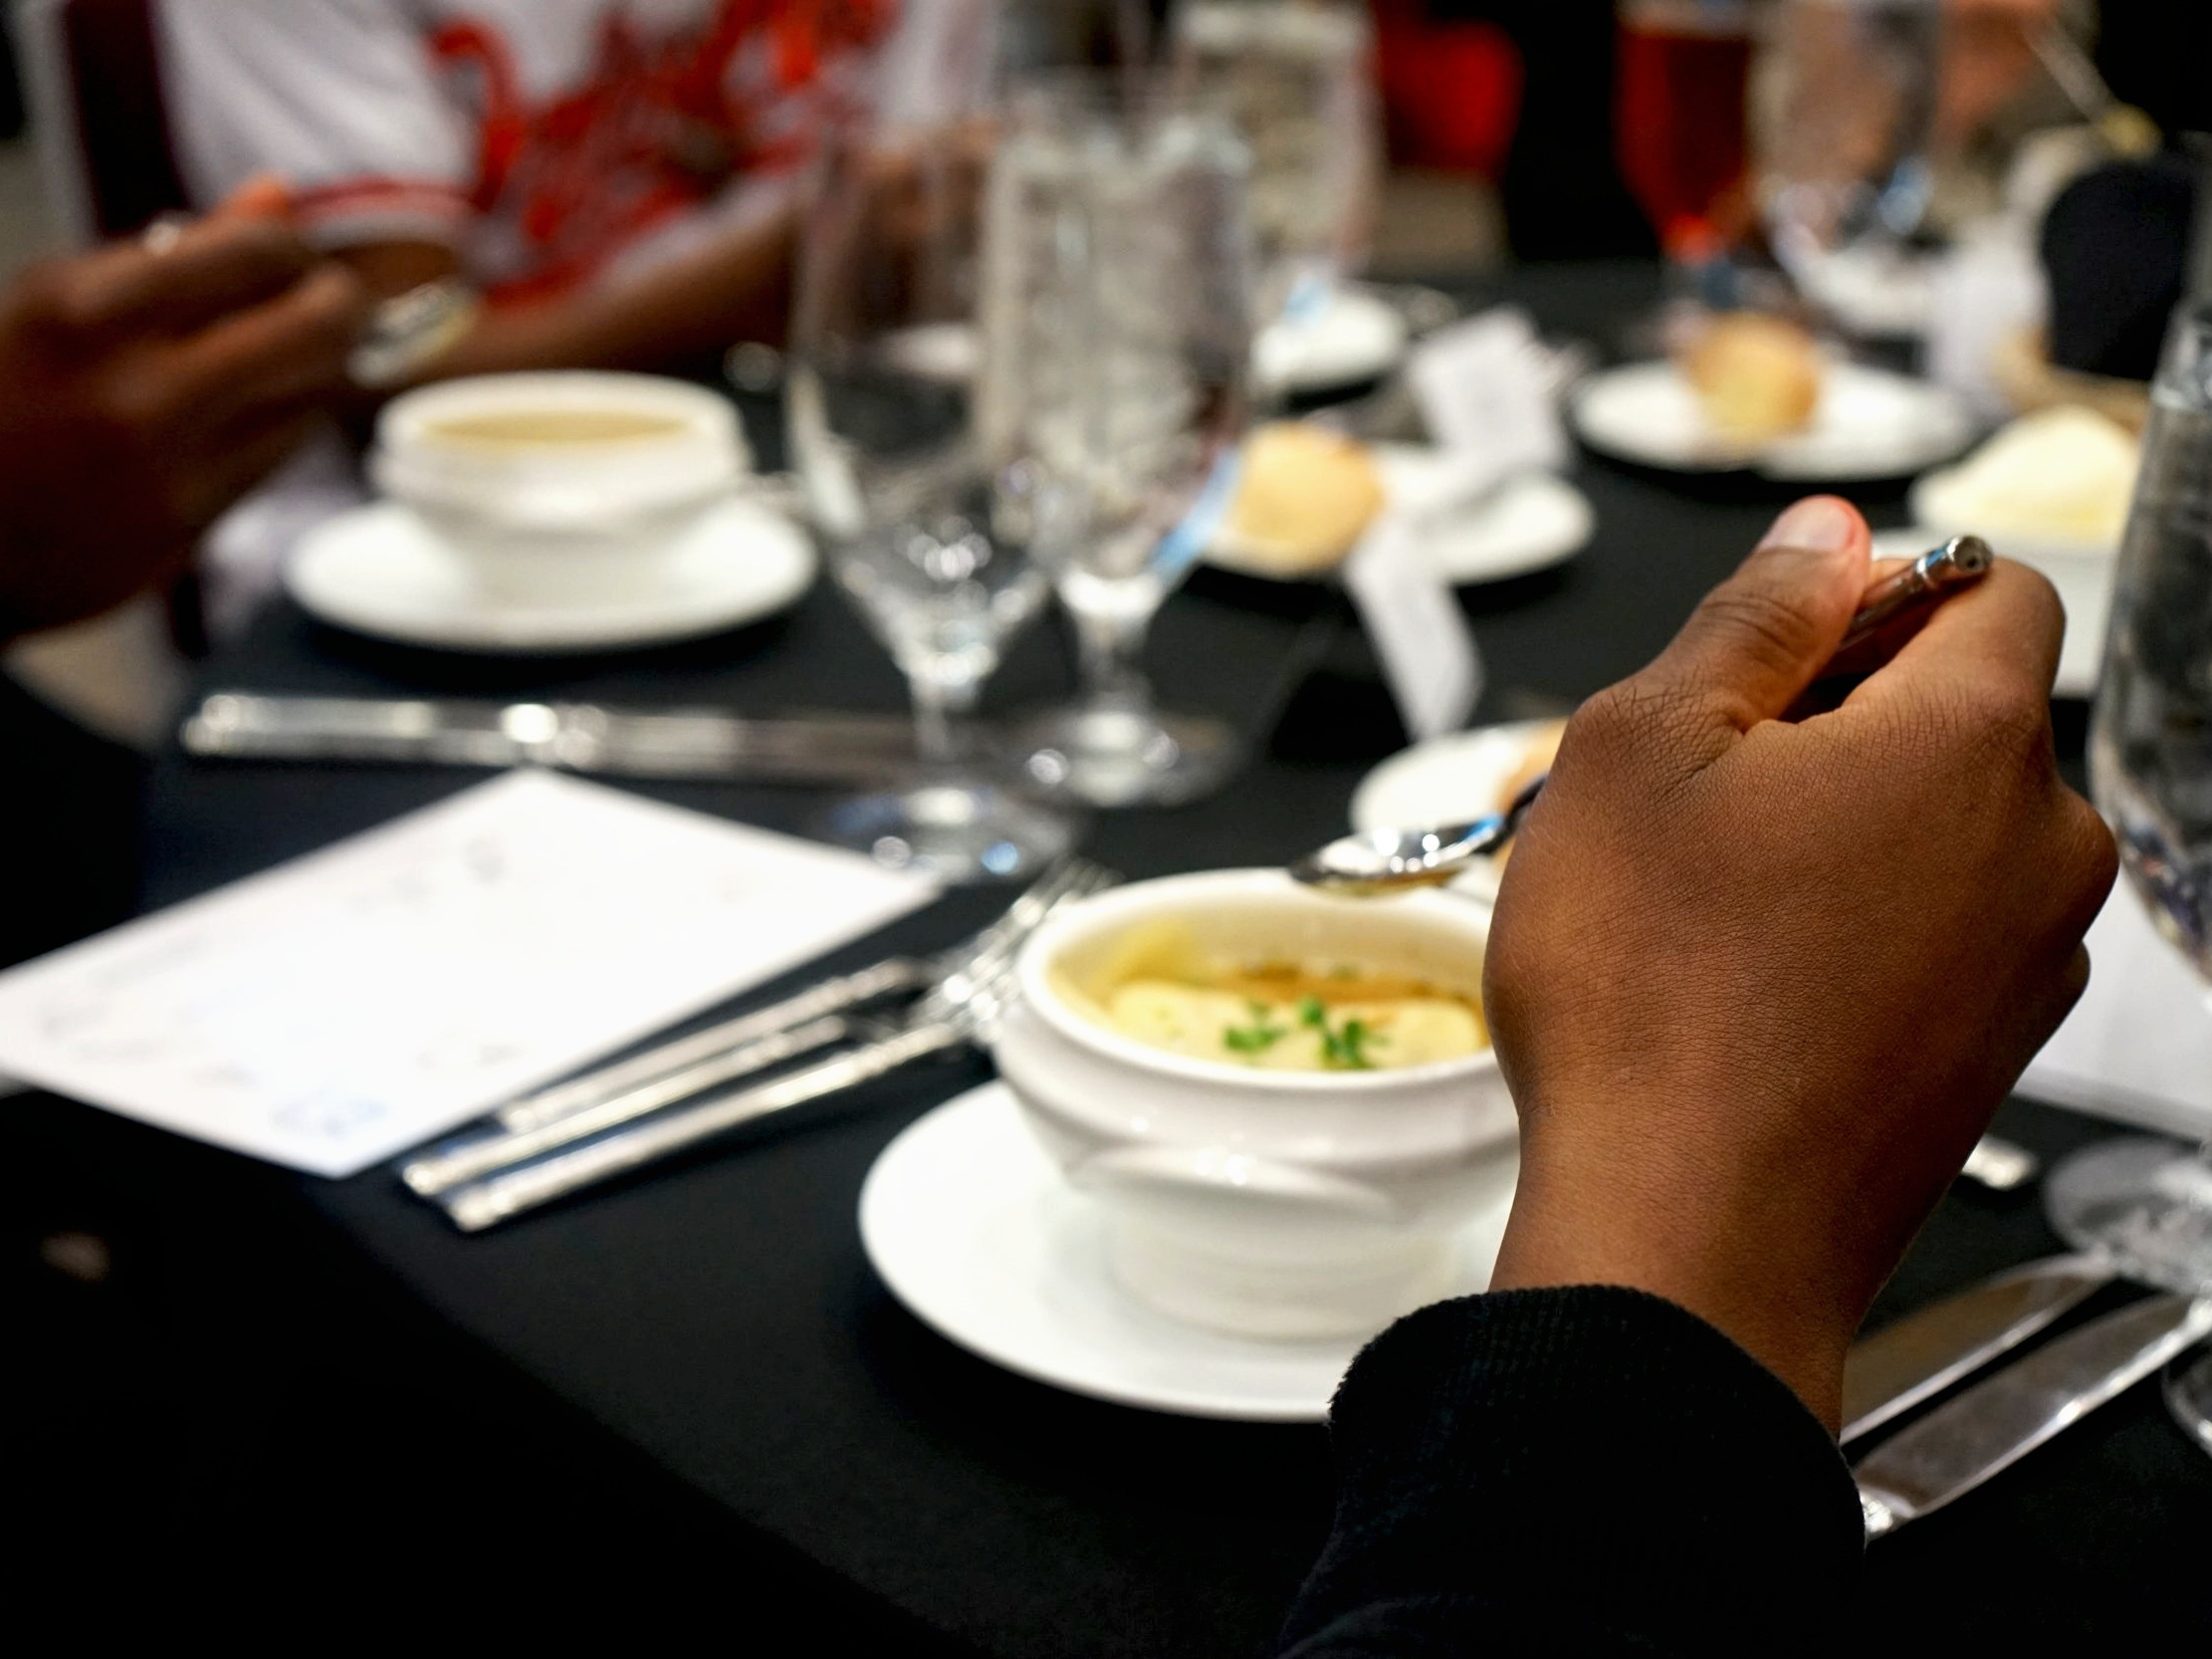 Students exhibit the proper spoon placement during the meal's first course.